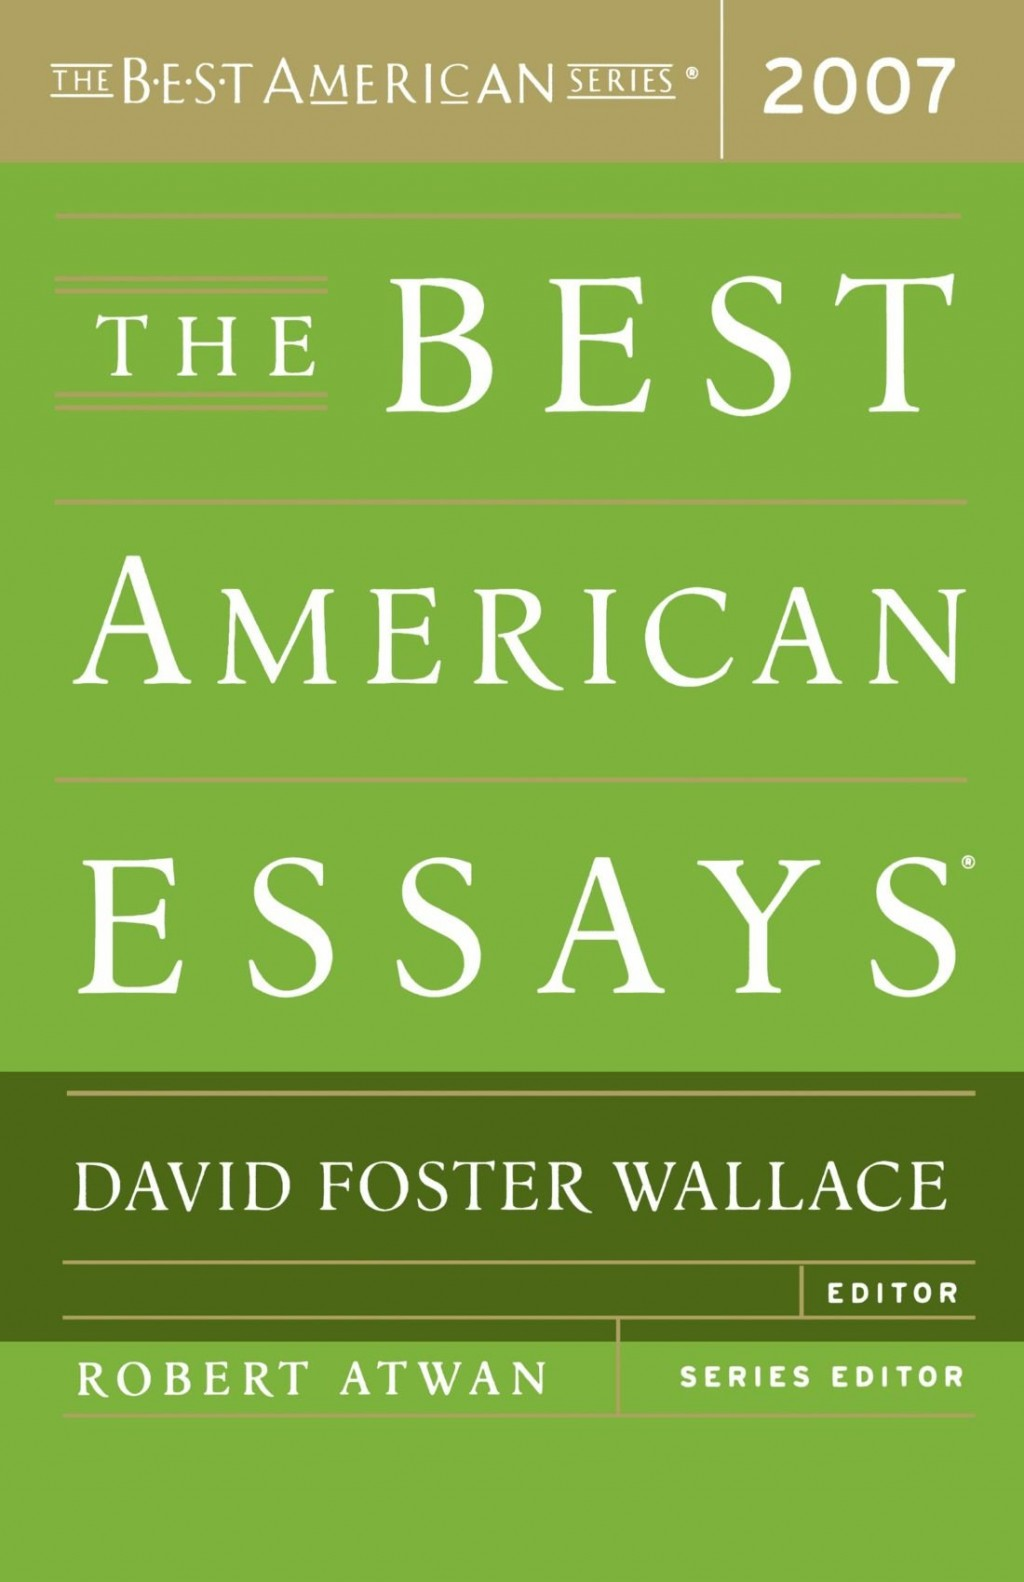 001 David Foster Wallace Essays Essay Example Formidable Amazon And The Long Thing New On Novels Cruise Ship Large